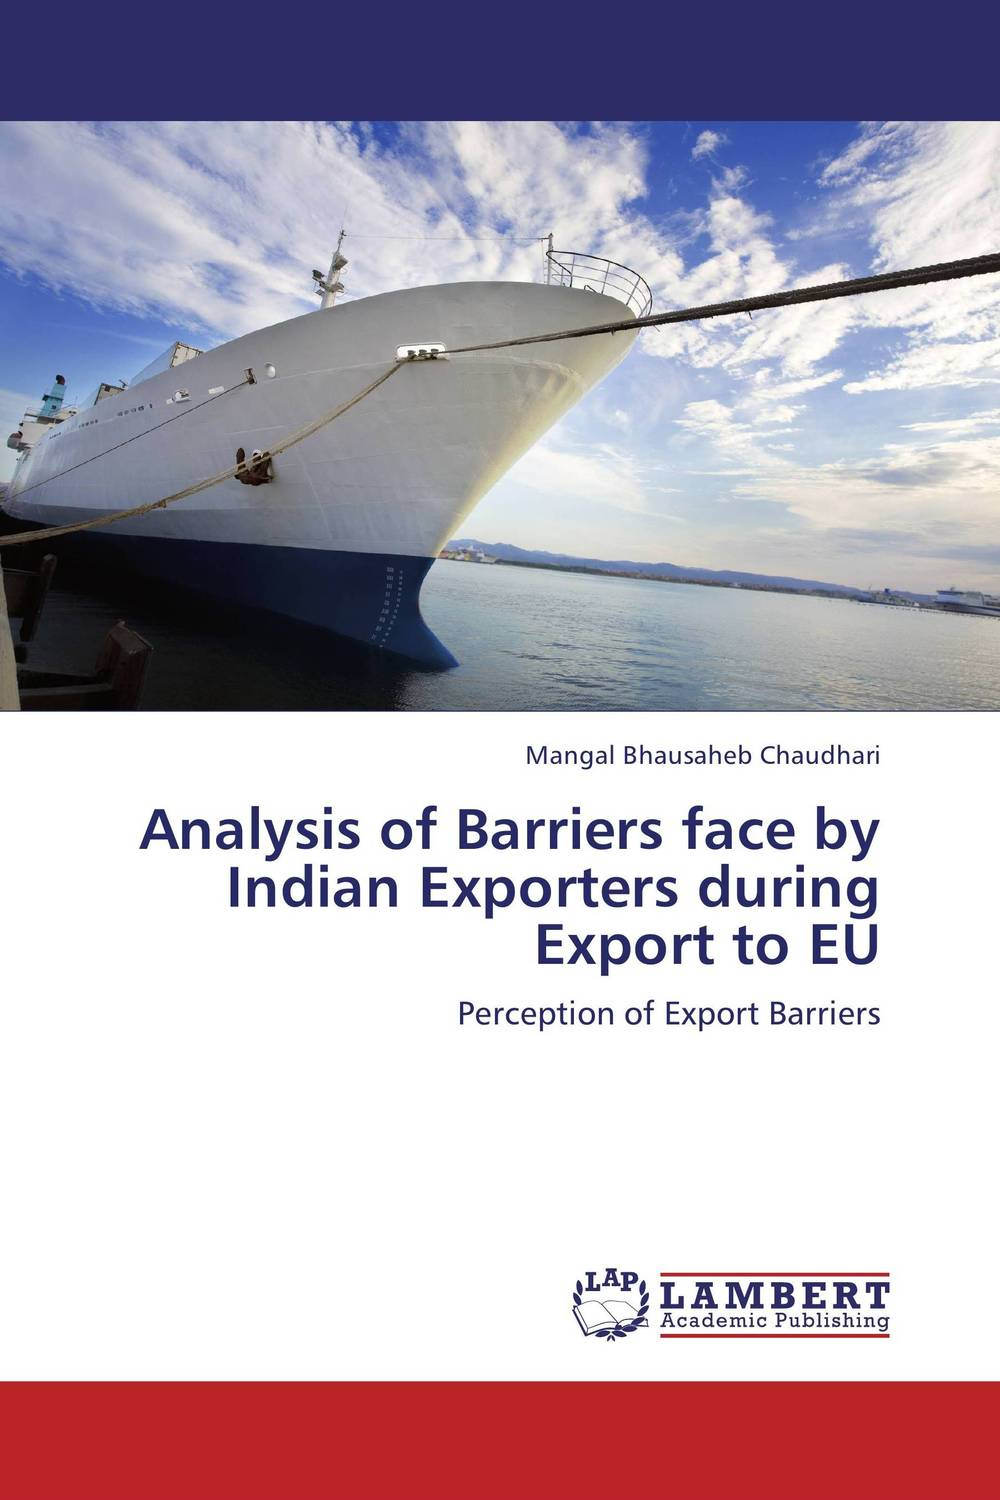 Analysis of Barriers face by Indian Exporters during Export to EU